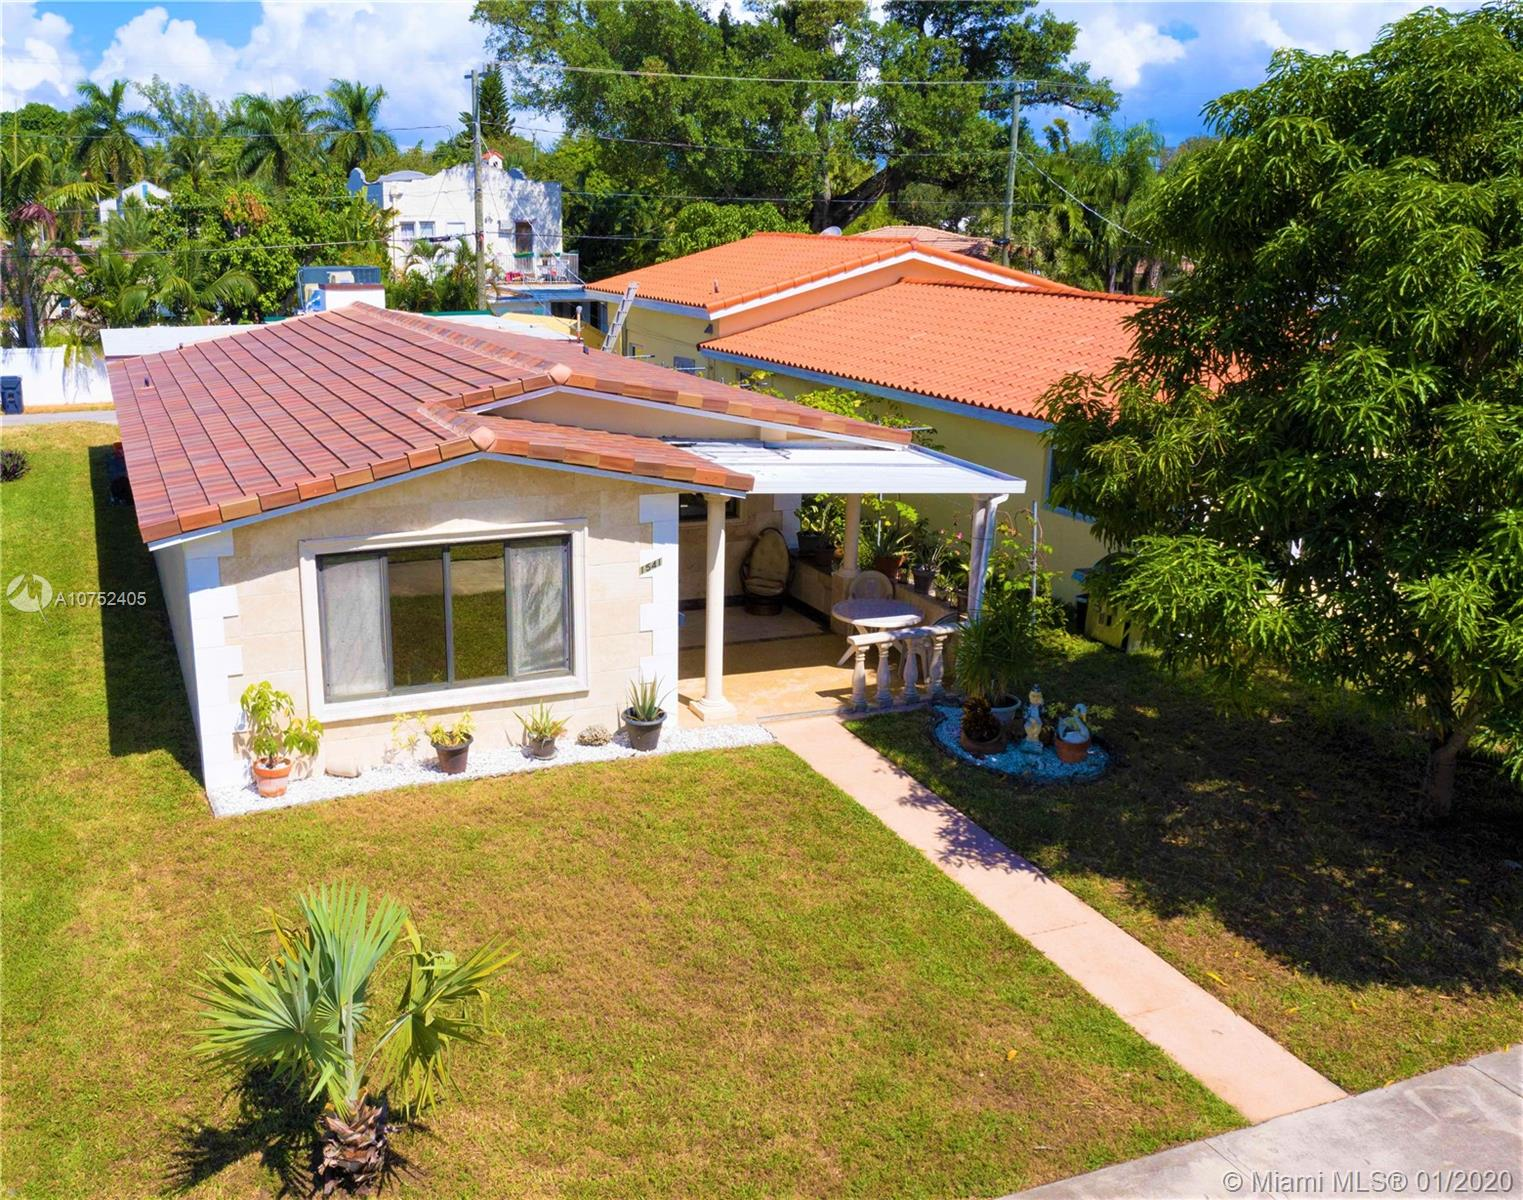 Property for sale at 1541 Hollywood Blvd, Hollywood,  Florida 33020